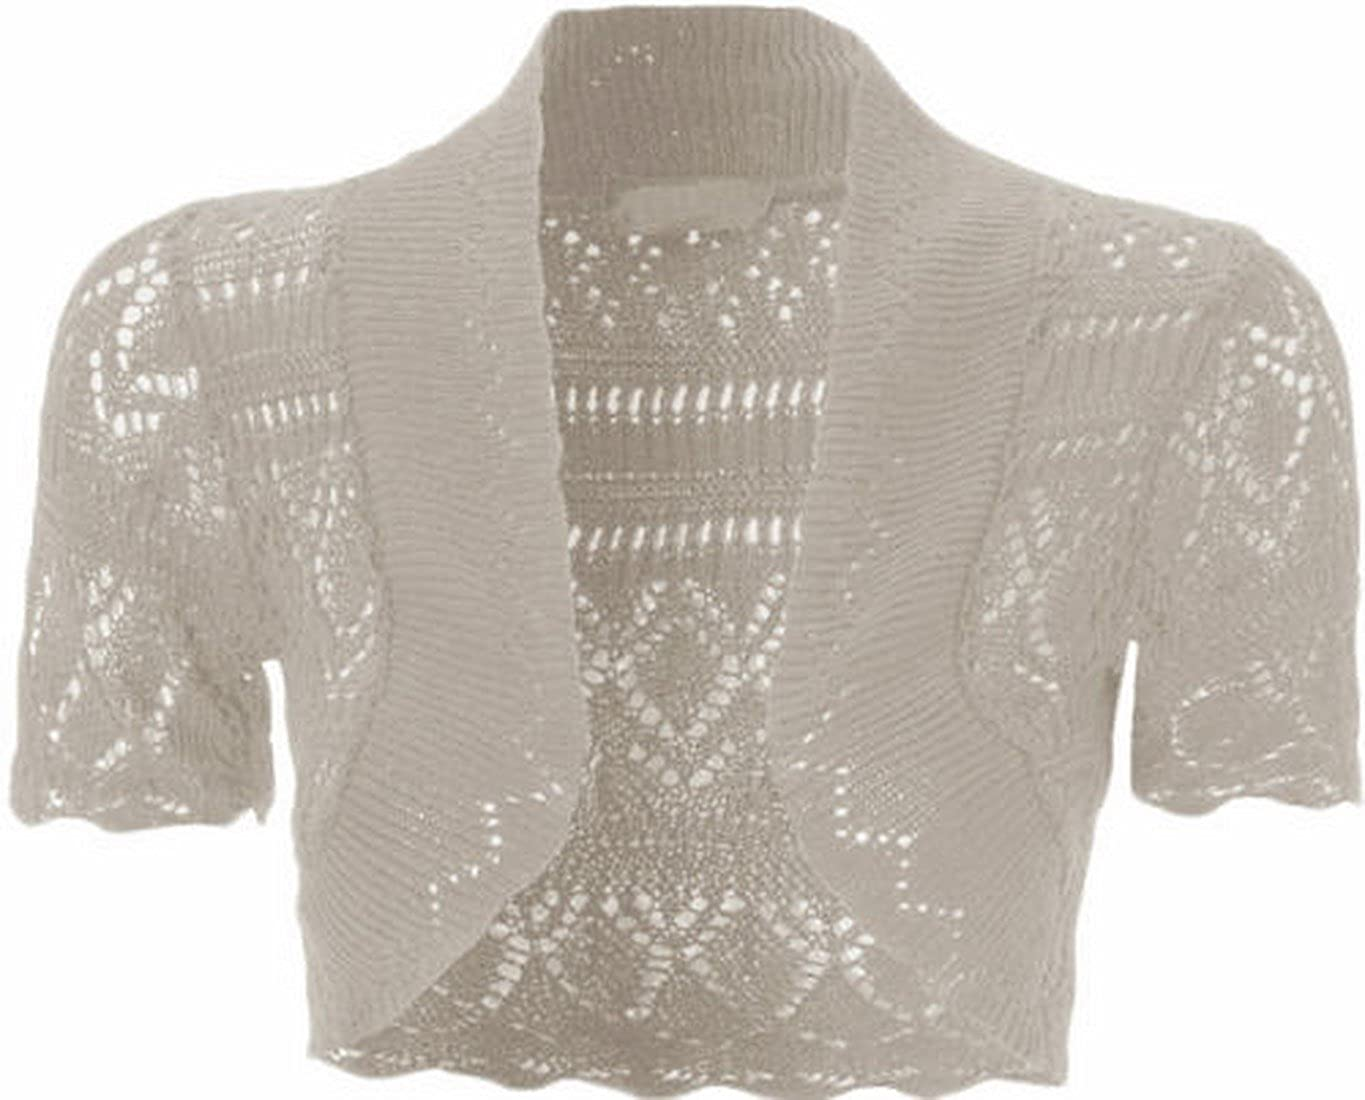 96582dbebb9 Womens Knitted Bolero Shrug Short Sleeve Crochet Shrug (White) at Amazon  Women s Clothing store